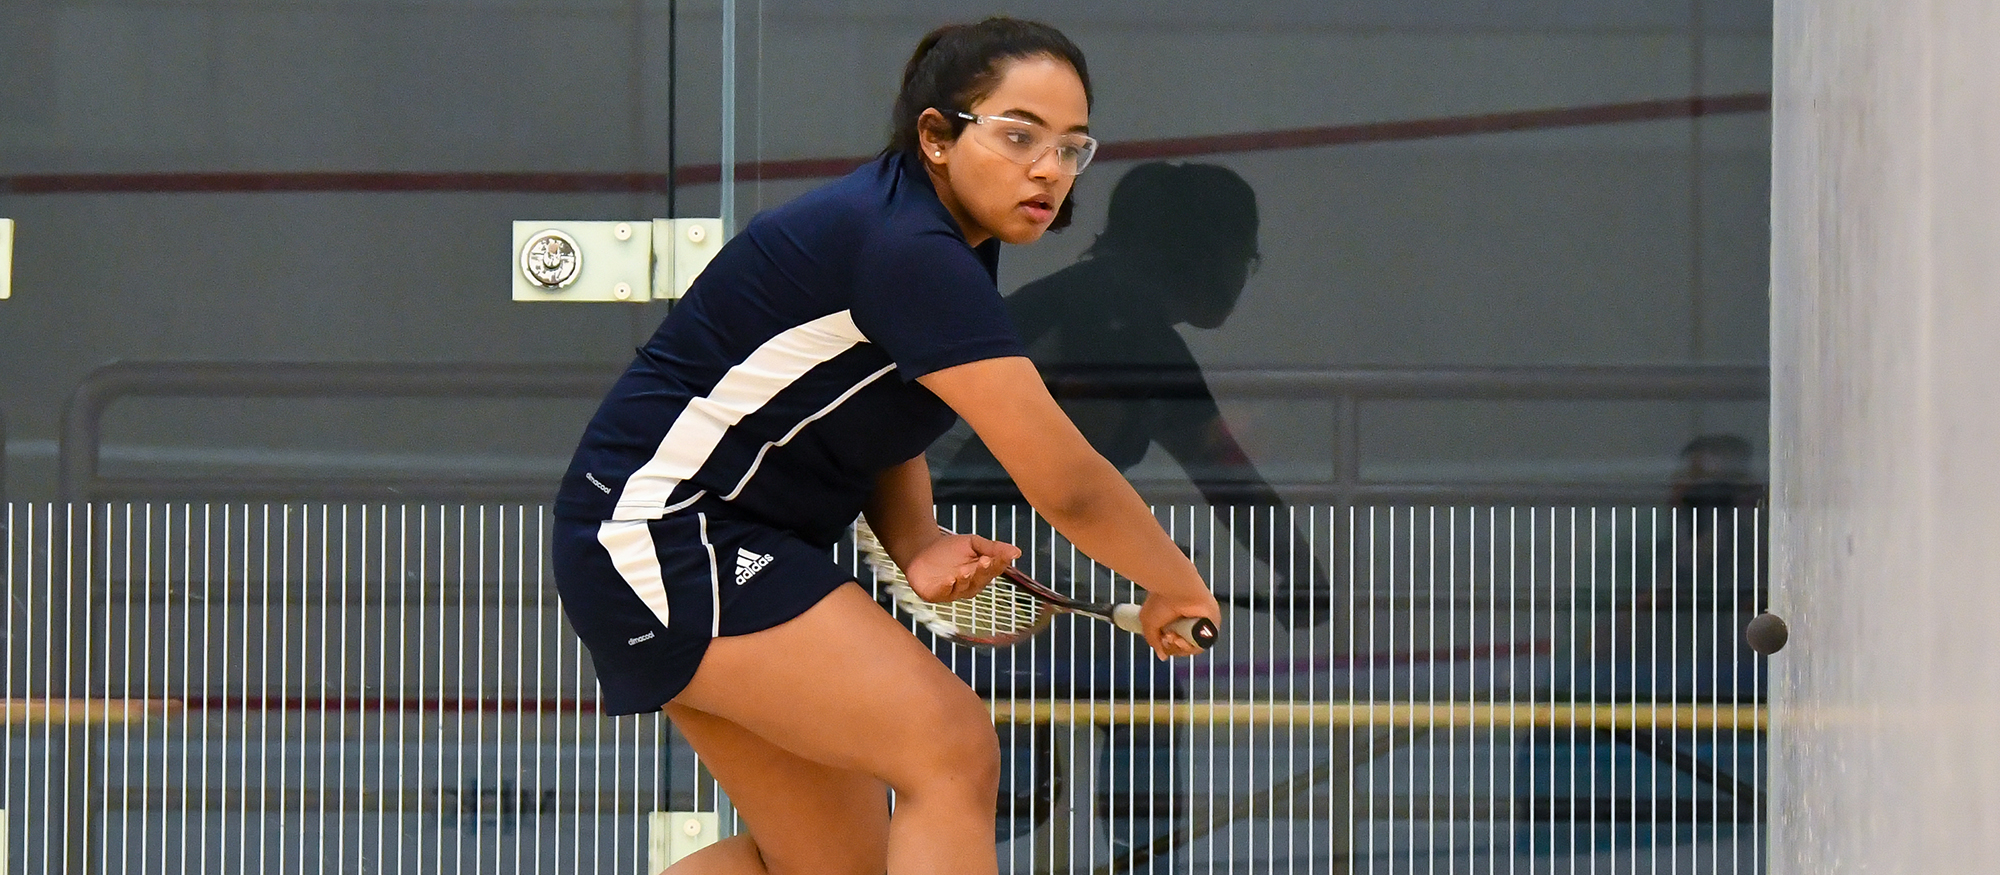 Action photo of Lyons squash player, Tanishka Sachidanand.